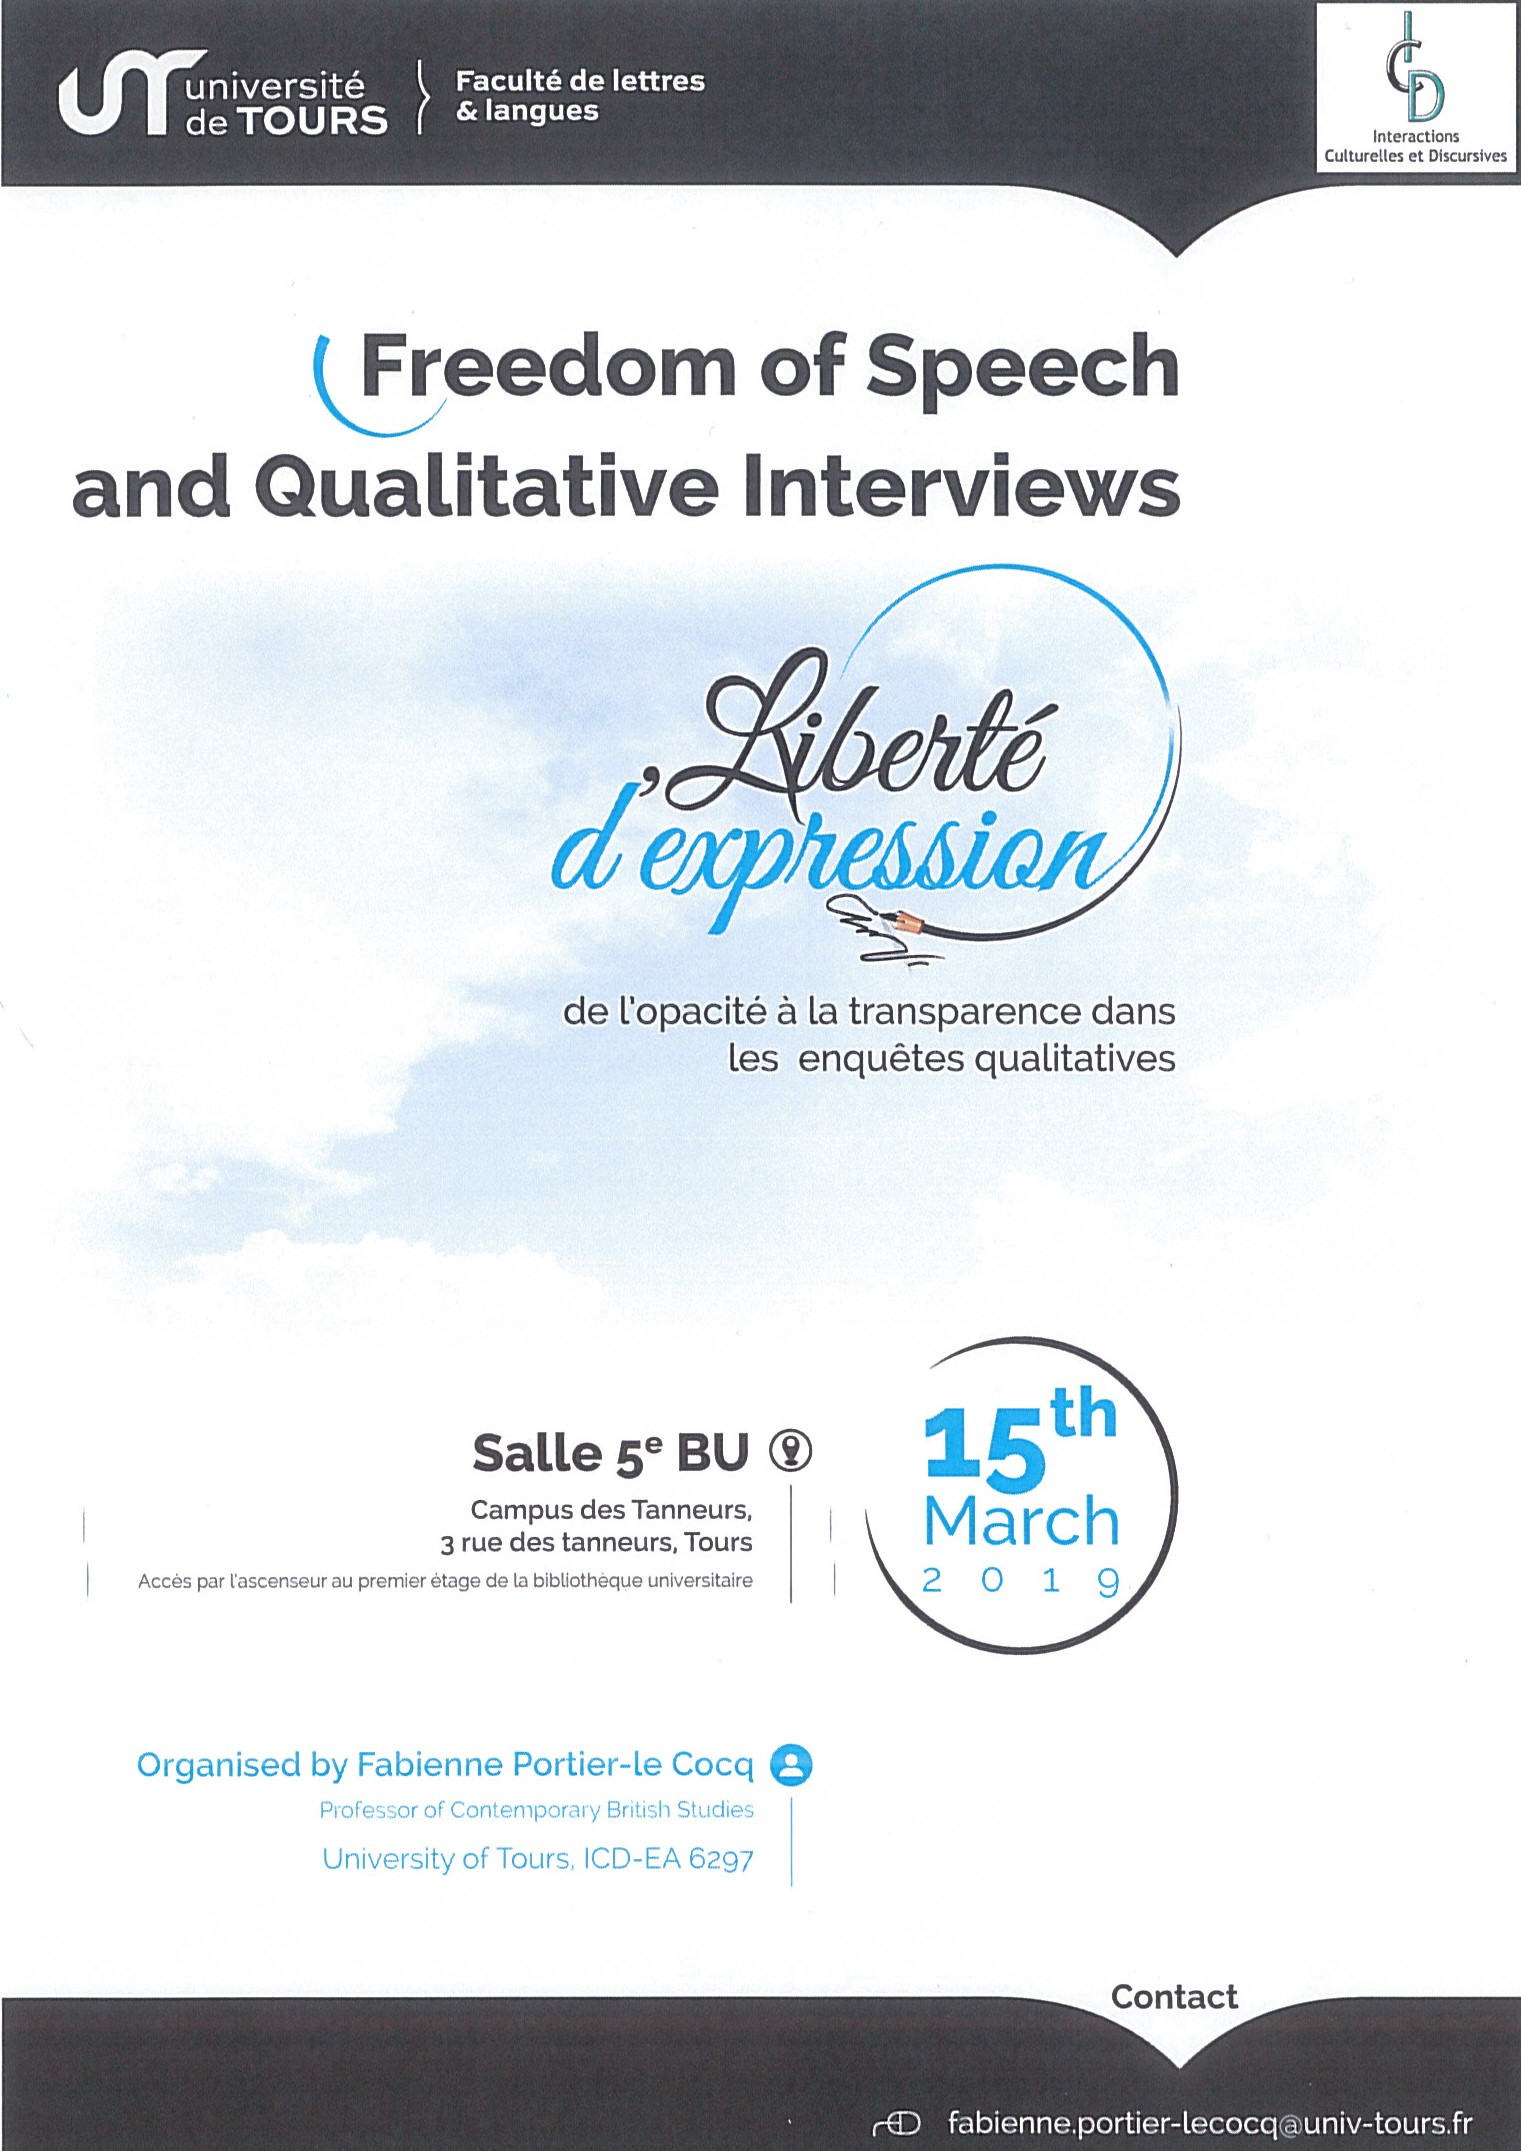 Freedom of Speech and Qualitative Interviews - Affiche